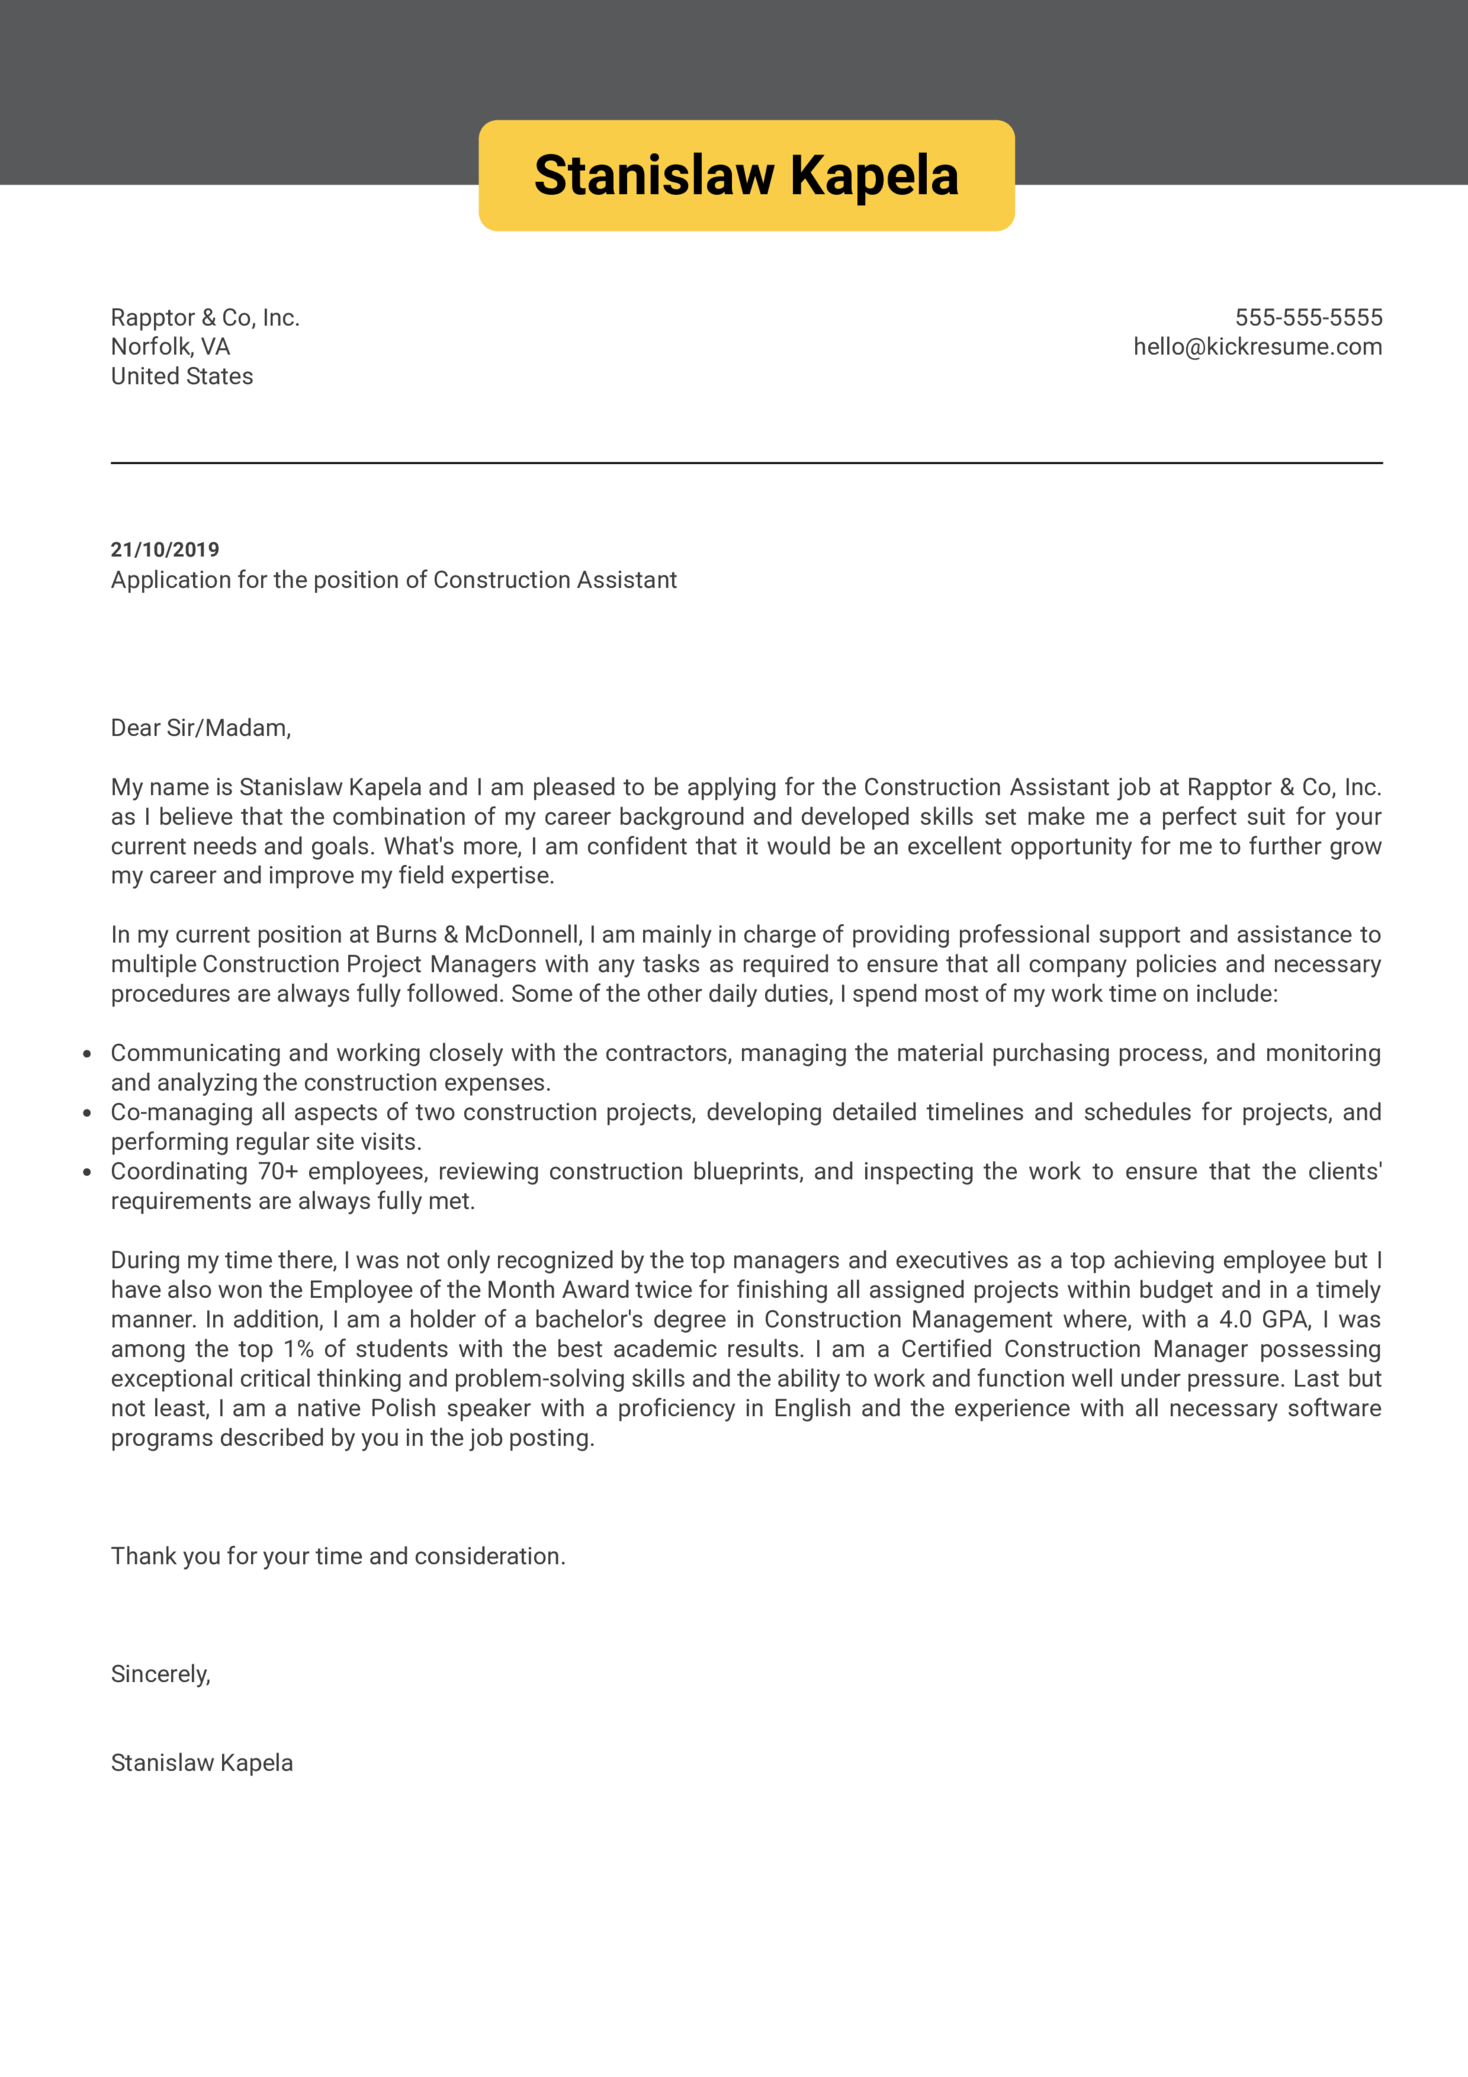 Construction Assistant Cover Letter Sample